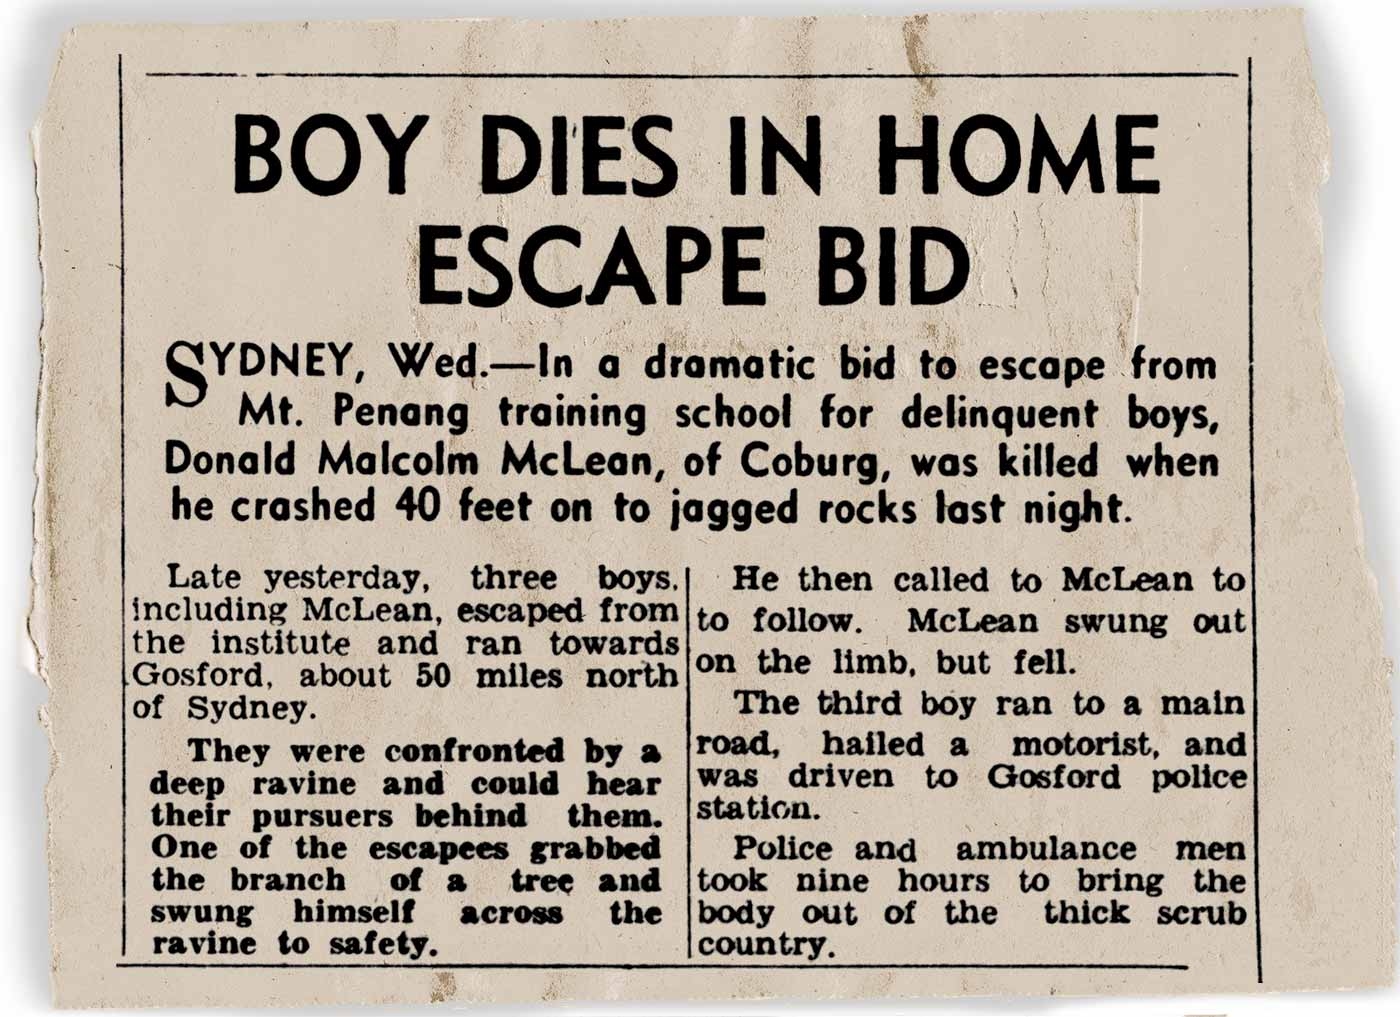 Copy of a newspaper clipping with a lead that reads 'Sydney, Wed. In a dramatic bid to escape from Mt. Penang training school for delinquent boys, Donald Malcolm McLean, of Coburg, was killed when he crashed 40 feet on to jagged rocks last night'. - click to view larger image